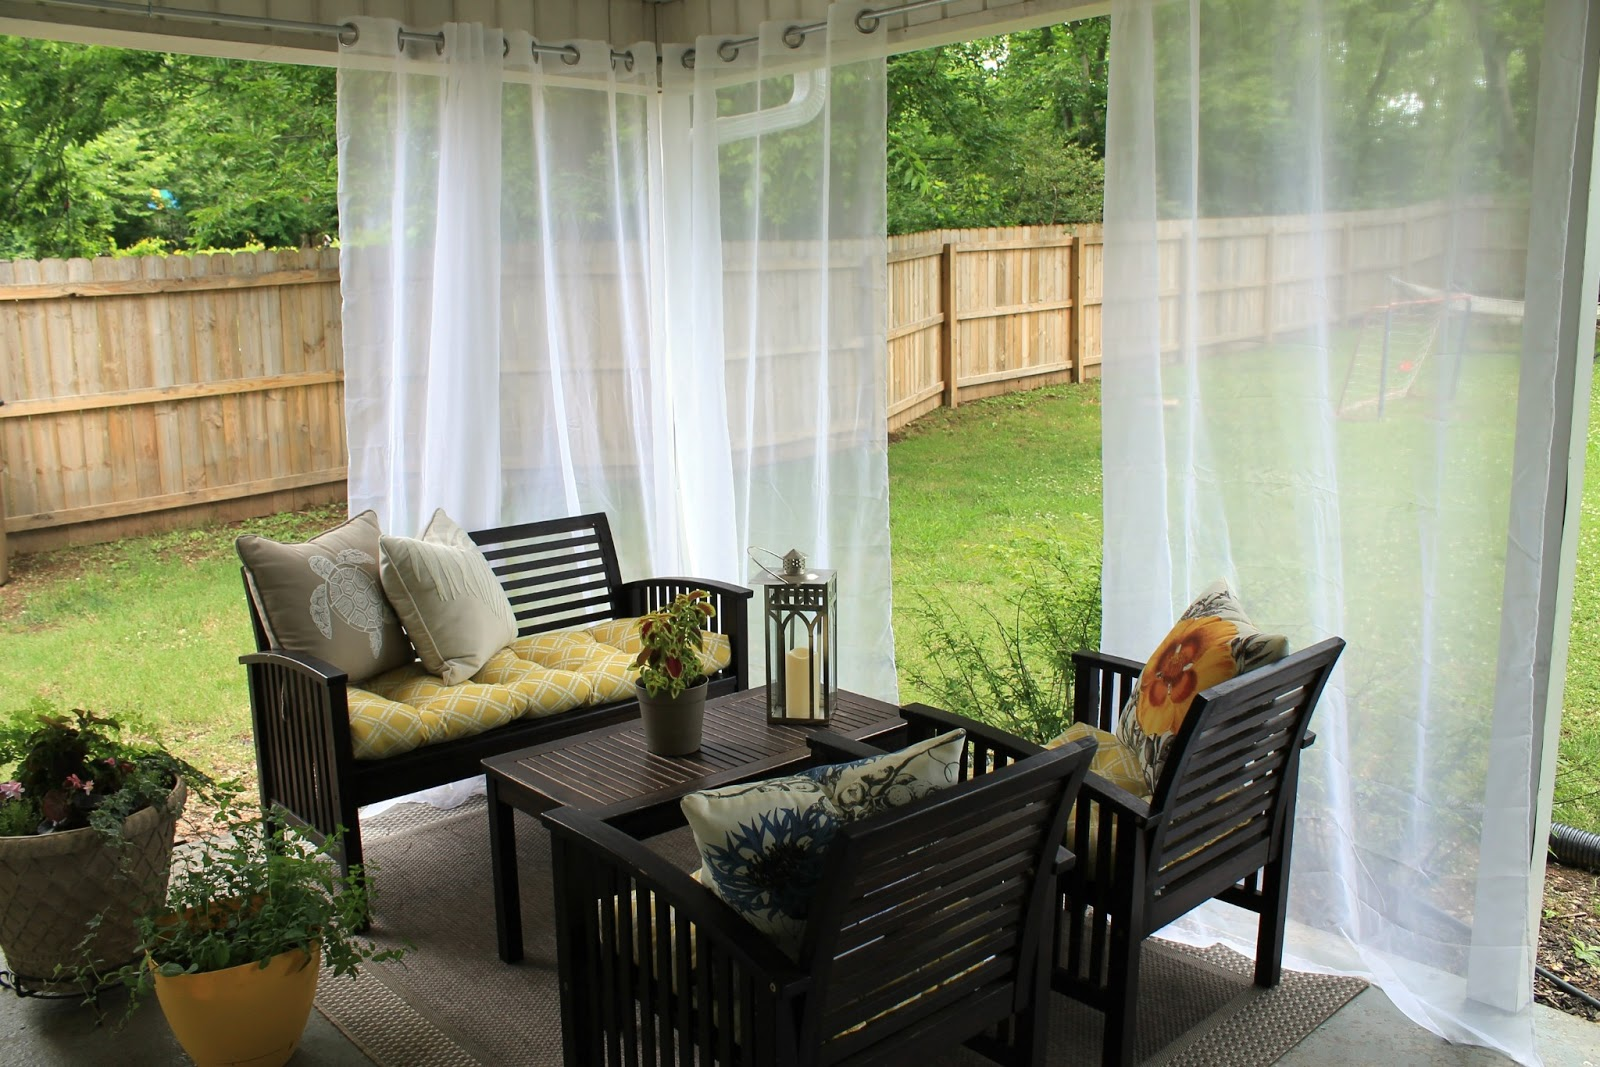 Summer Decoration Ideas For Your Home Outdoor curtains